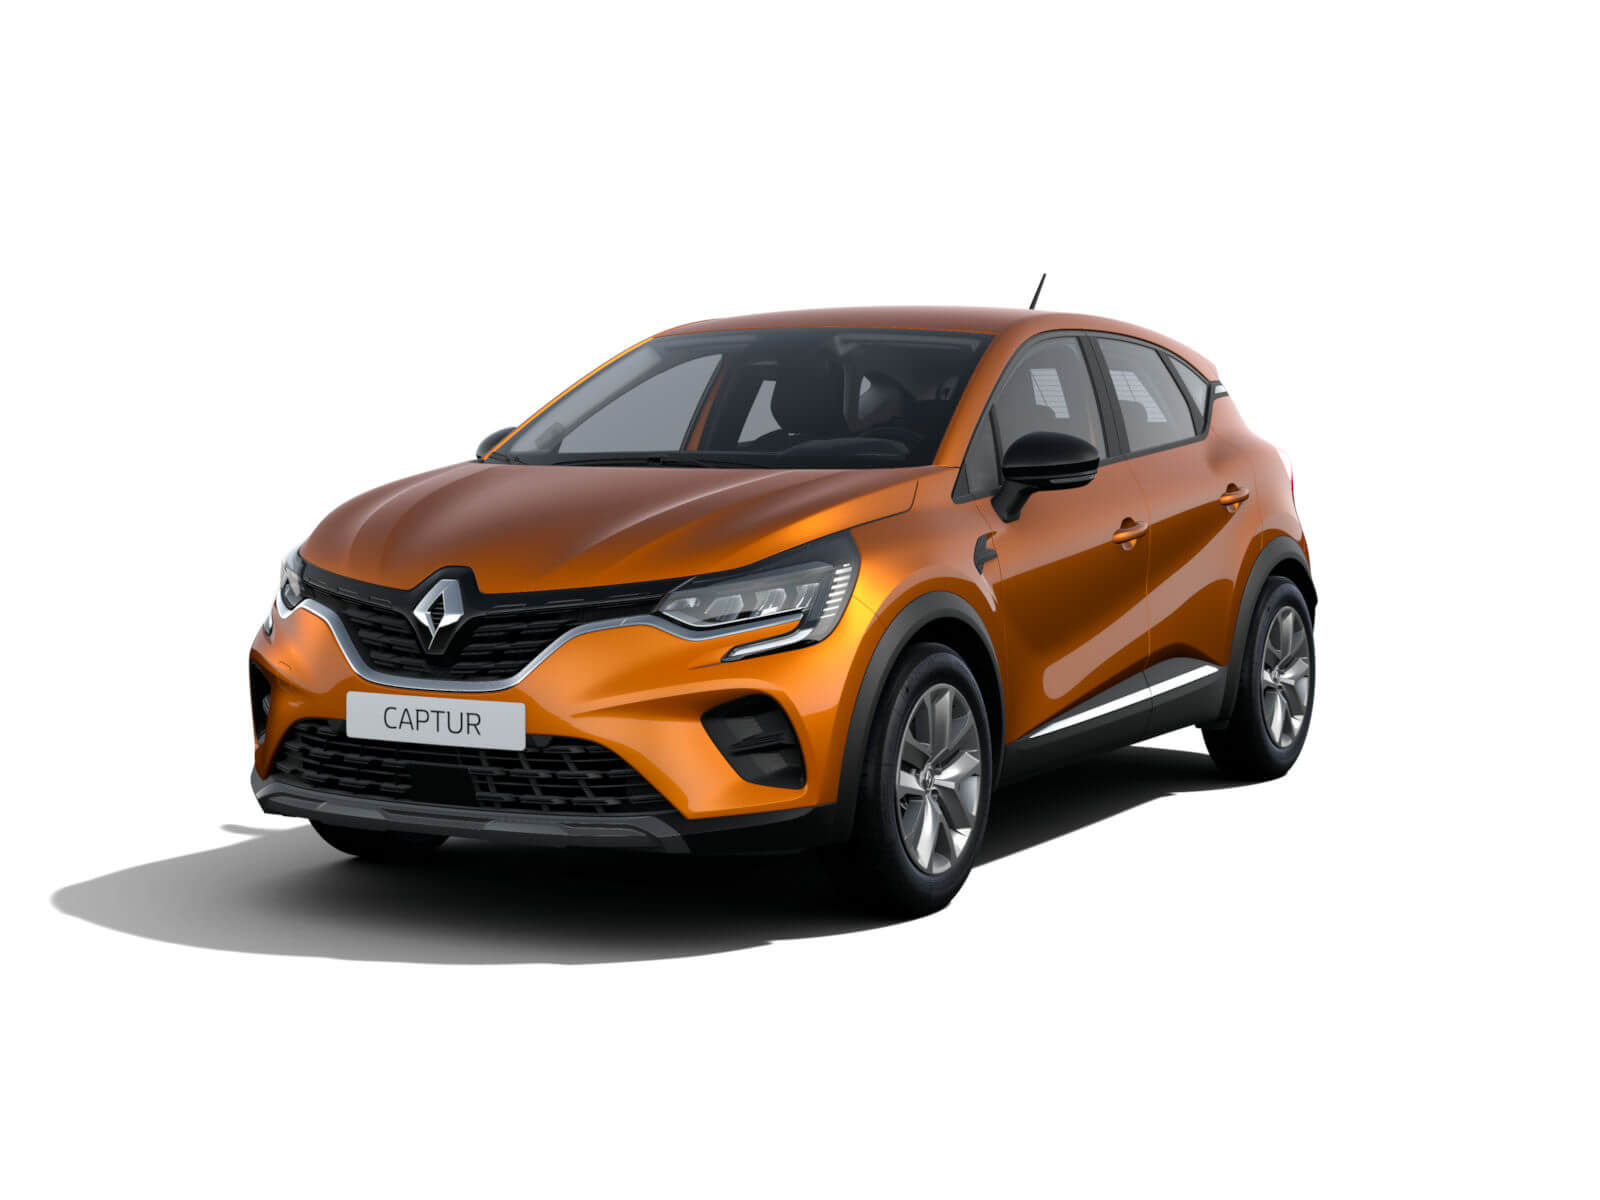 Renault Nouveau Captur – Orange Atacama